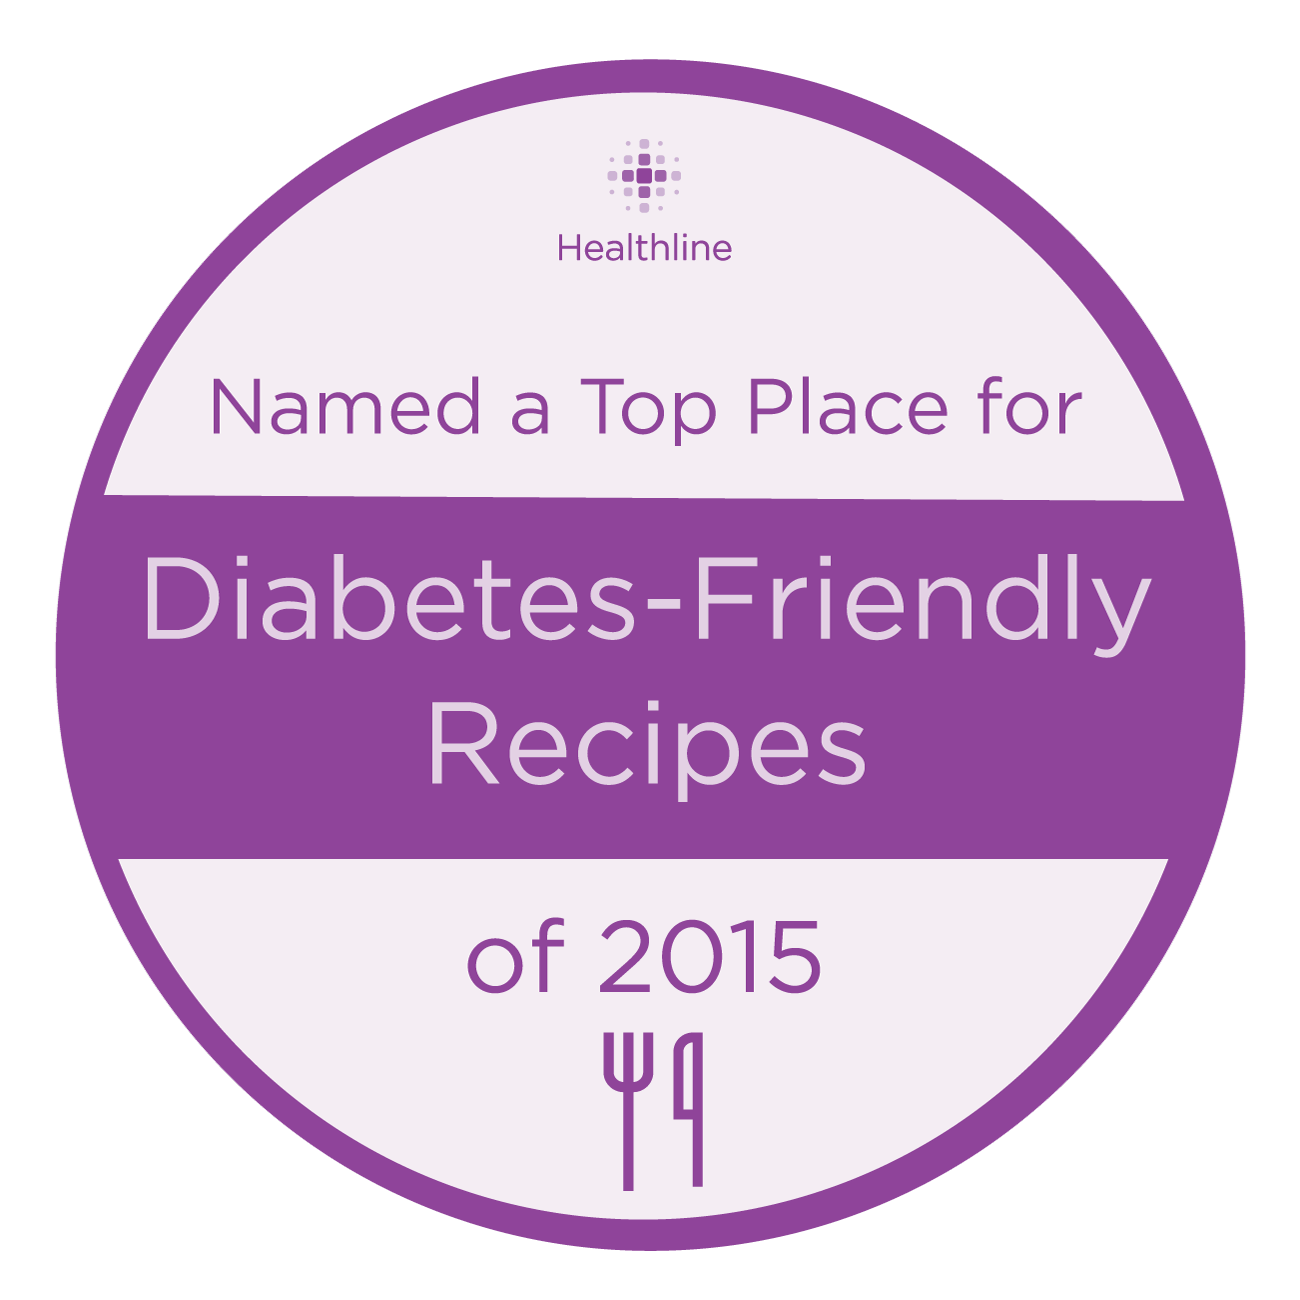 The Best Places to Find Diabetes-Friendly Recipes